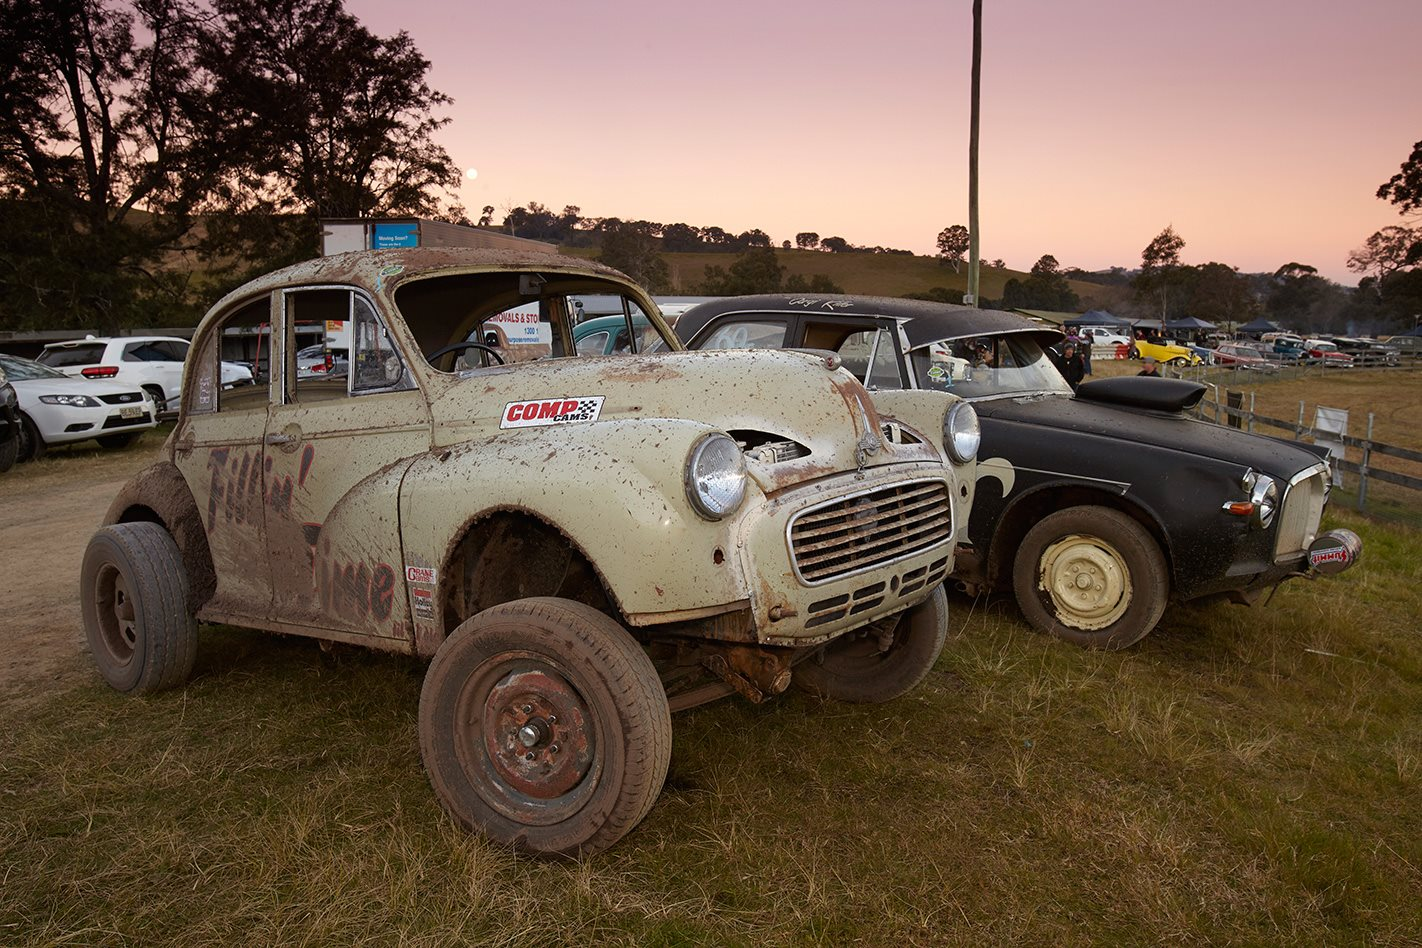 V8 MORRIS MINOR in sunset